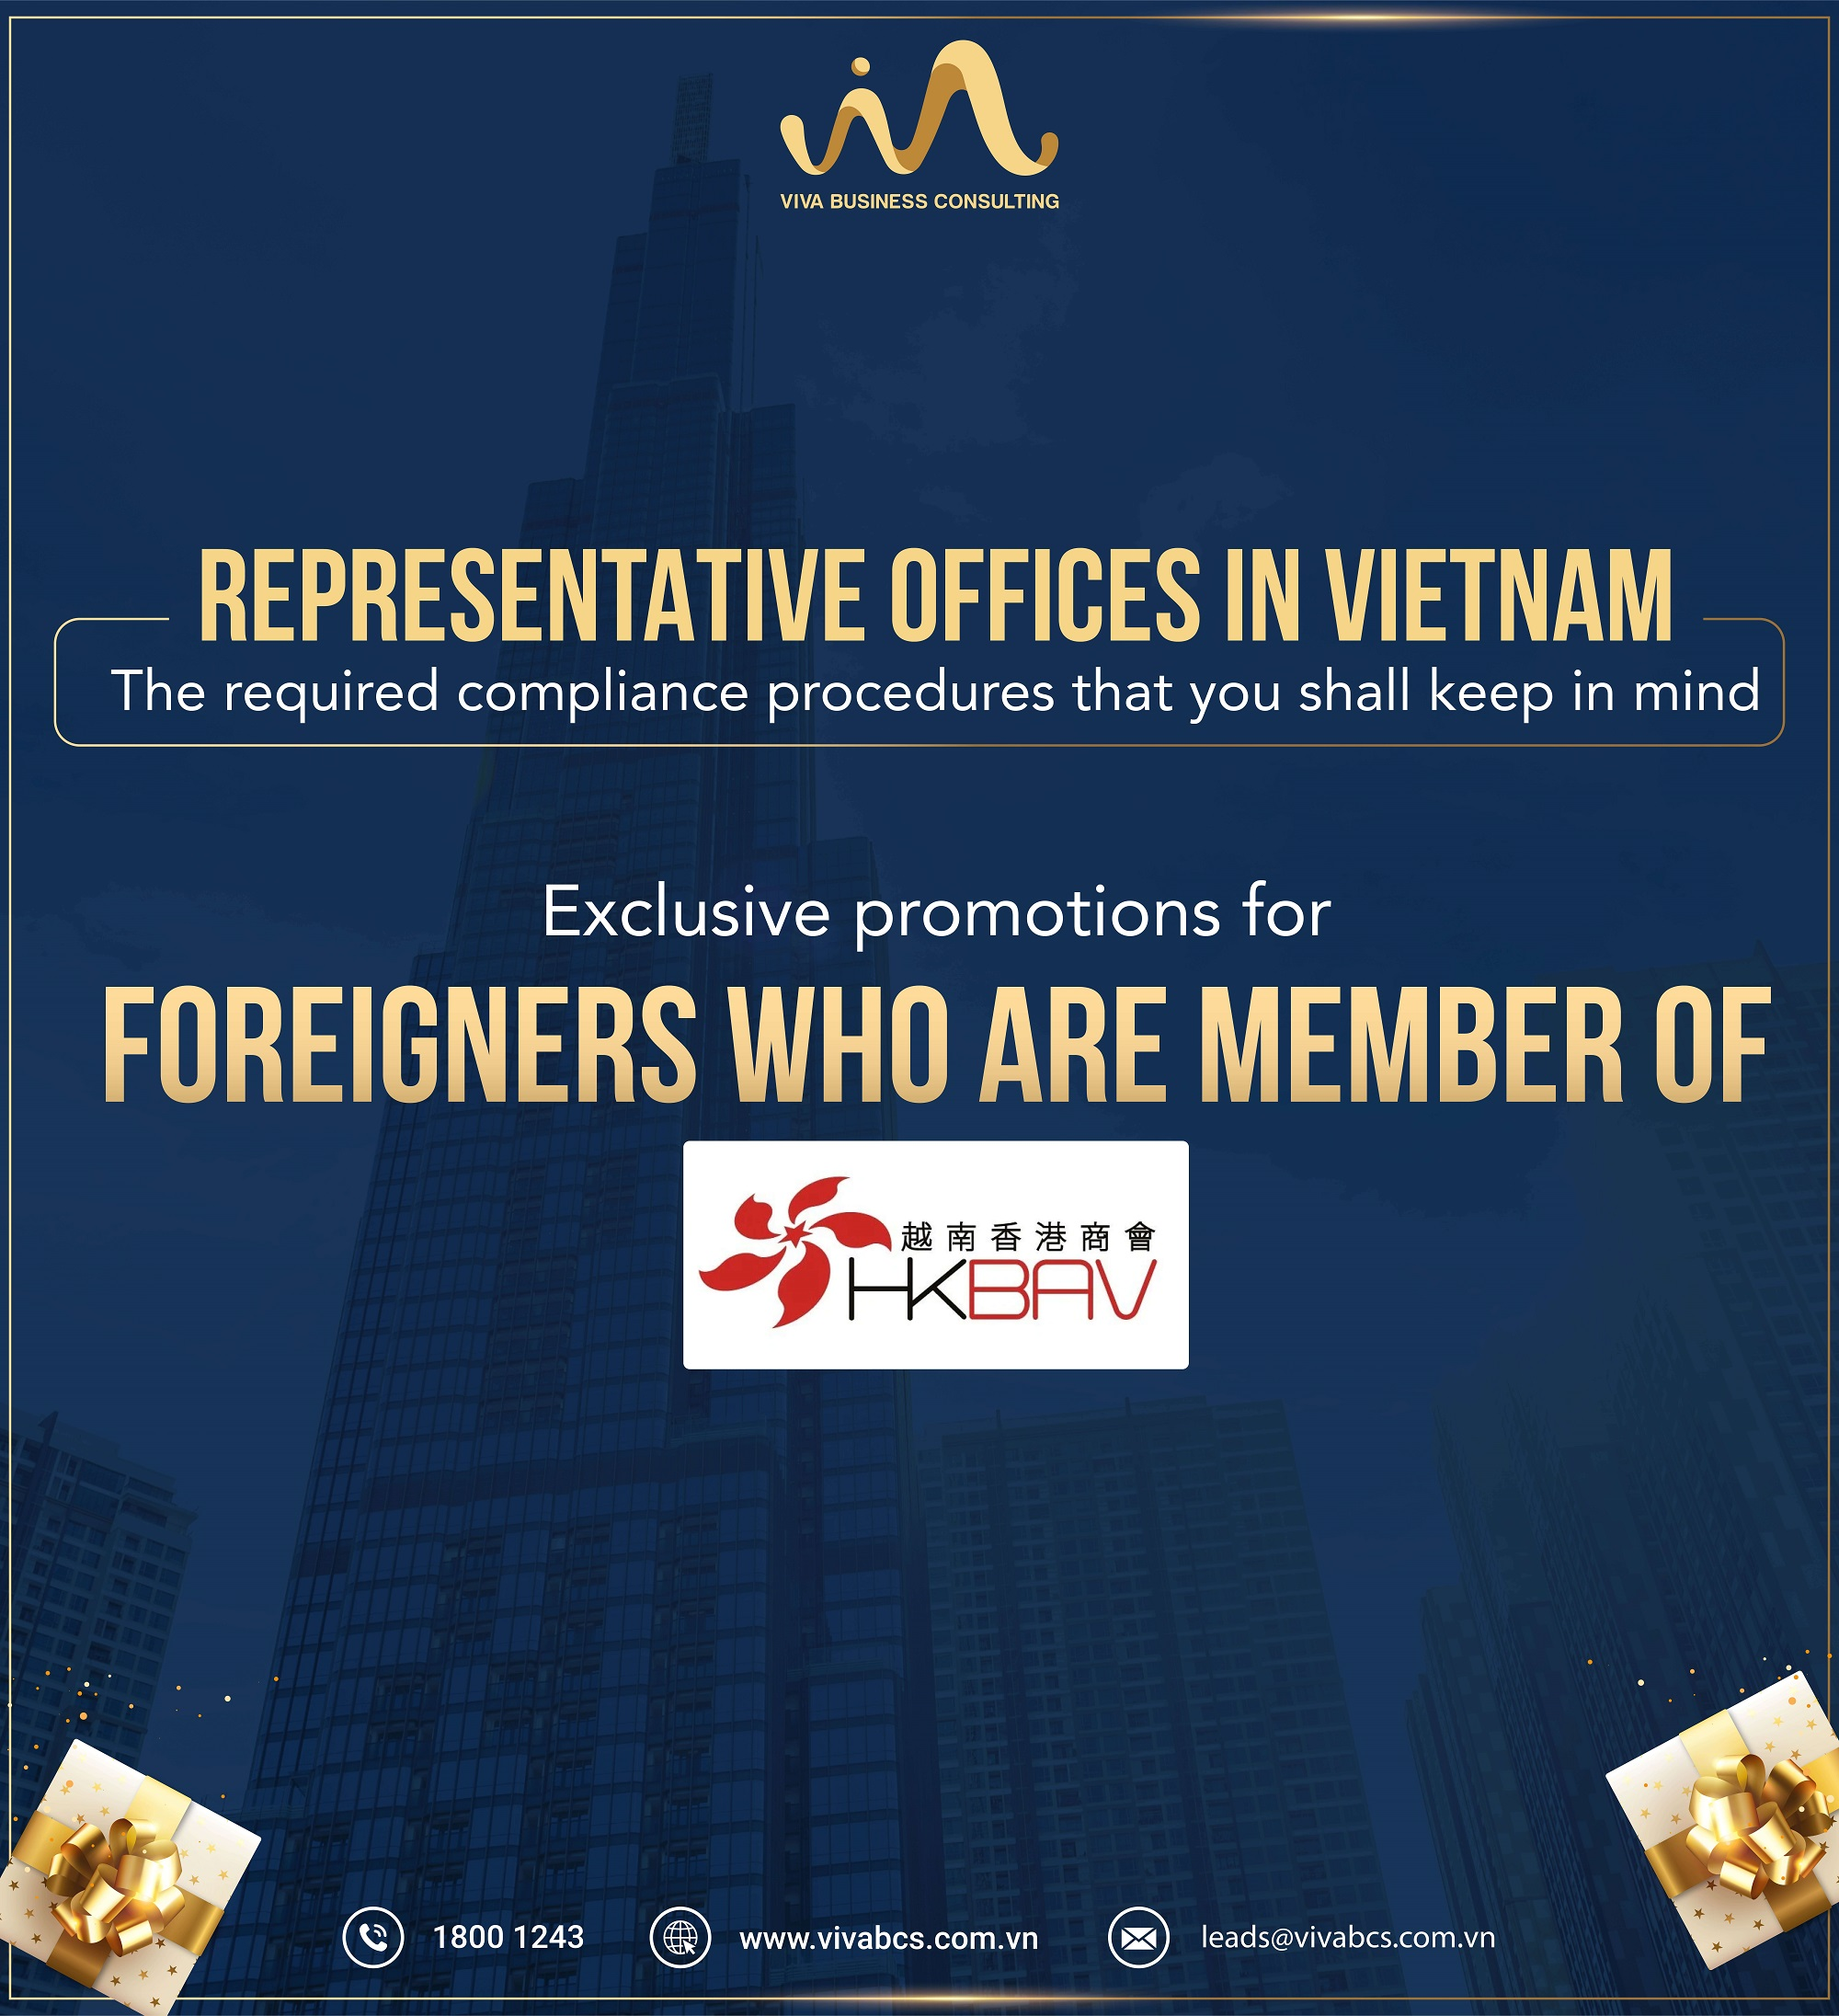 EXCLUSIVE PROMOTIONS FOR HONG KONG CHAMBER